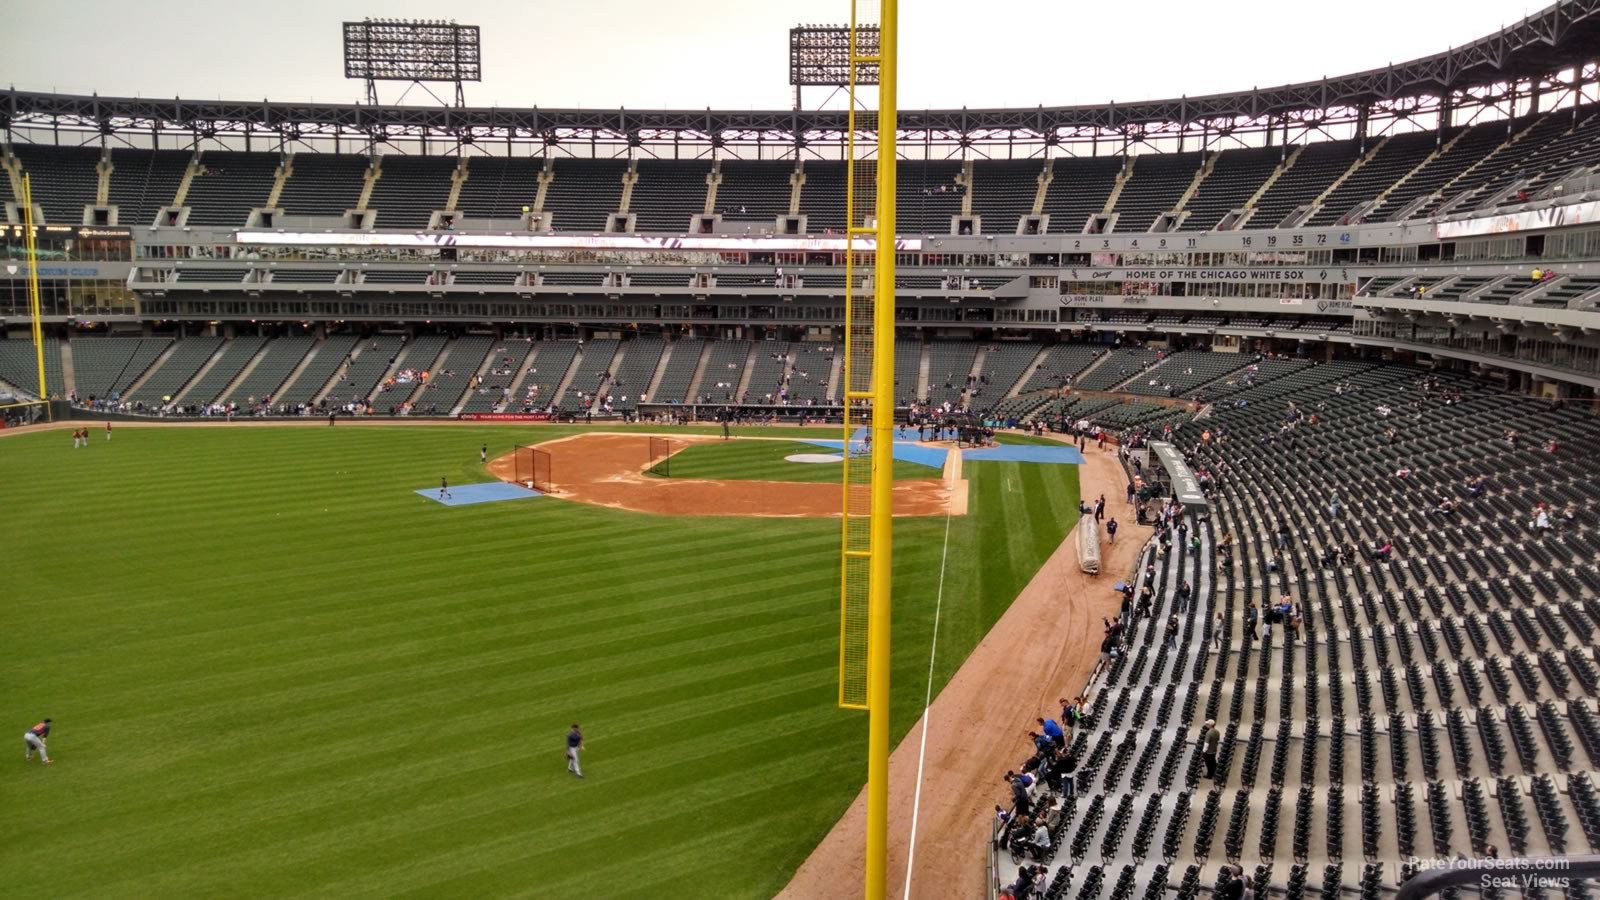 Guaranteed Rate Field Section 357 - RateYourSeats.com